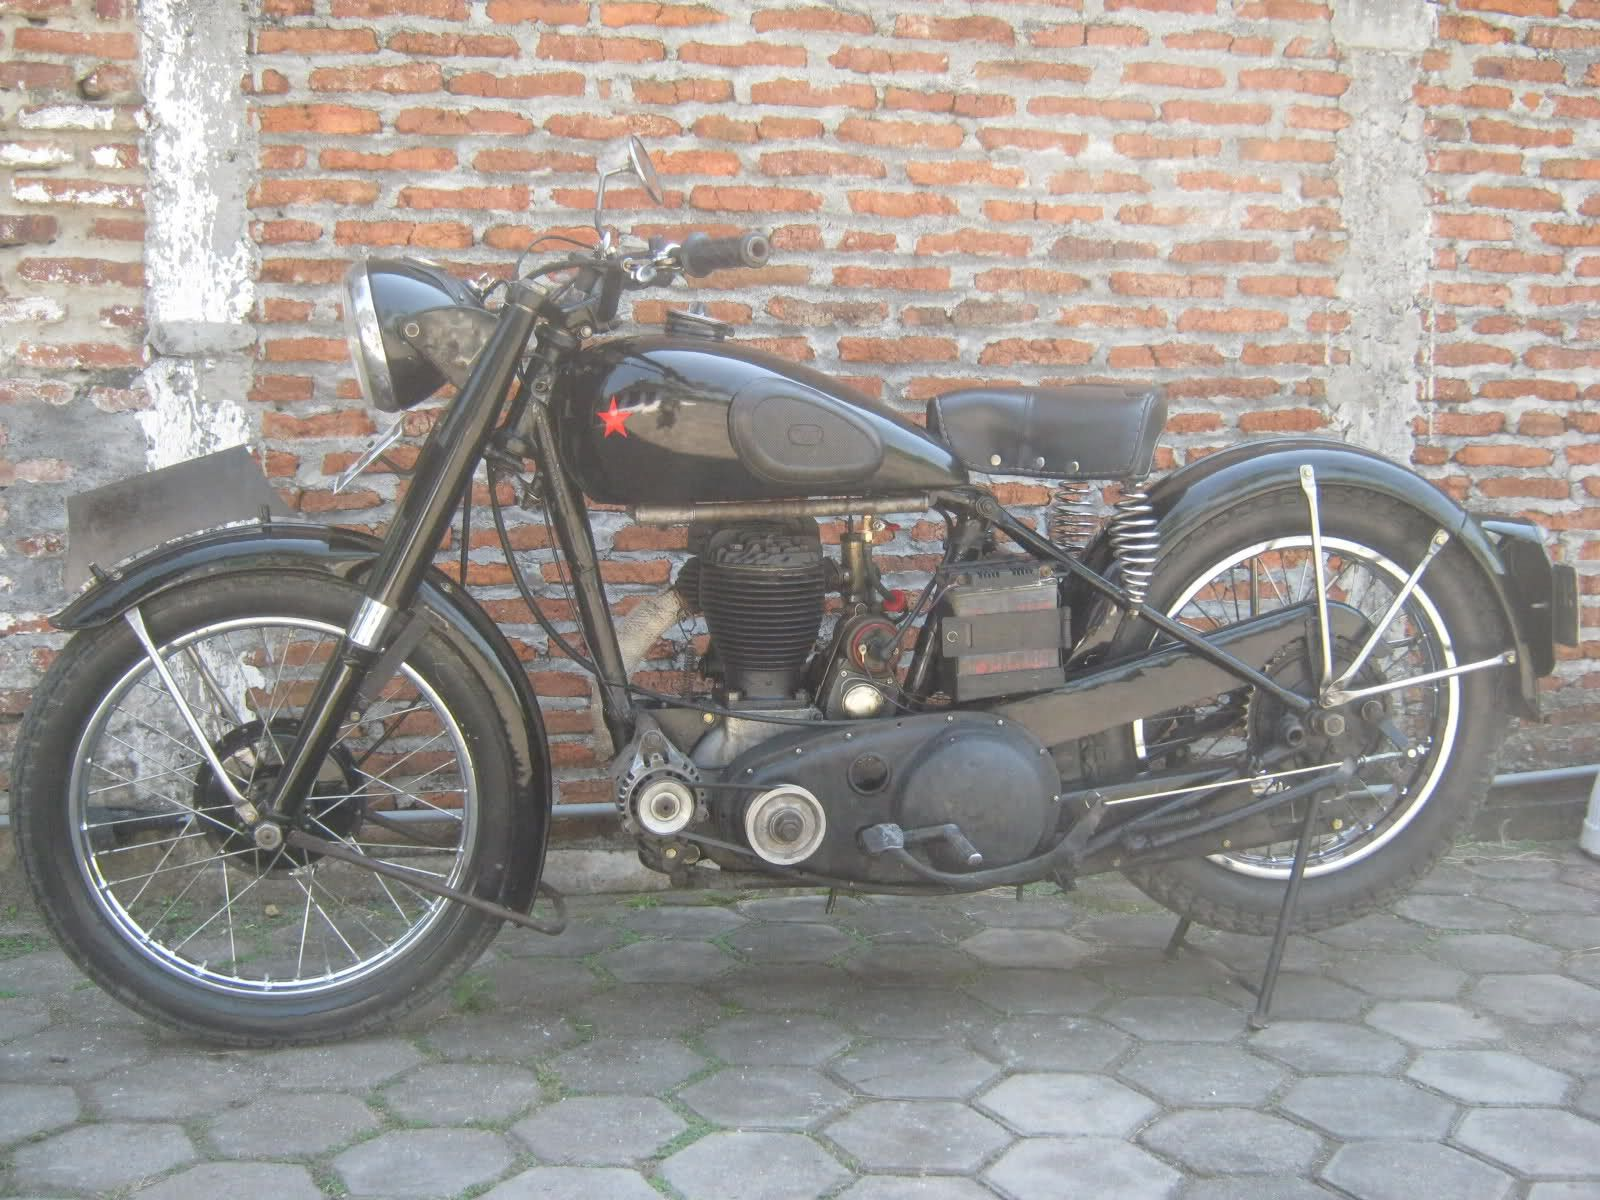 Bsa M20 1948 Rebuild Bsa M20 500cc I Put Disc Brake For The Back Safety First Although The Bsa M20 In 2021 Vintage Motorcycles Classic Motorcycles Classic Bikes